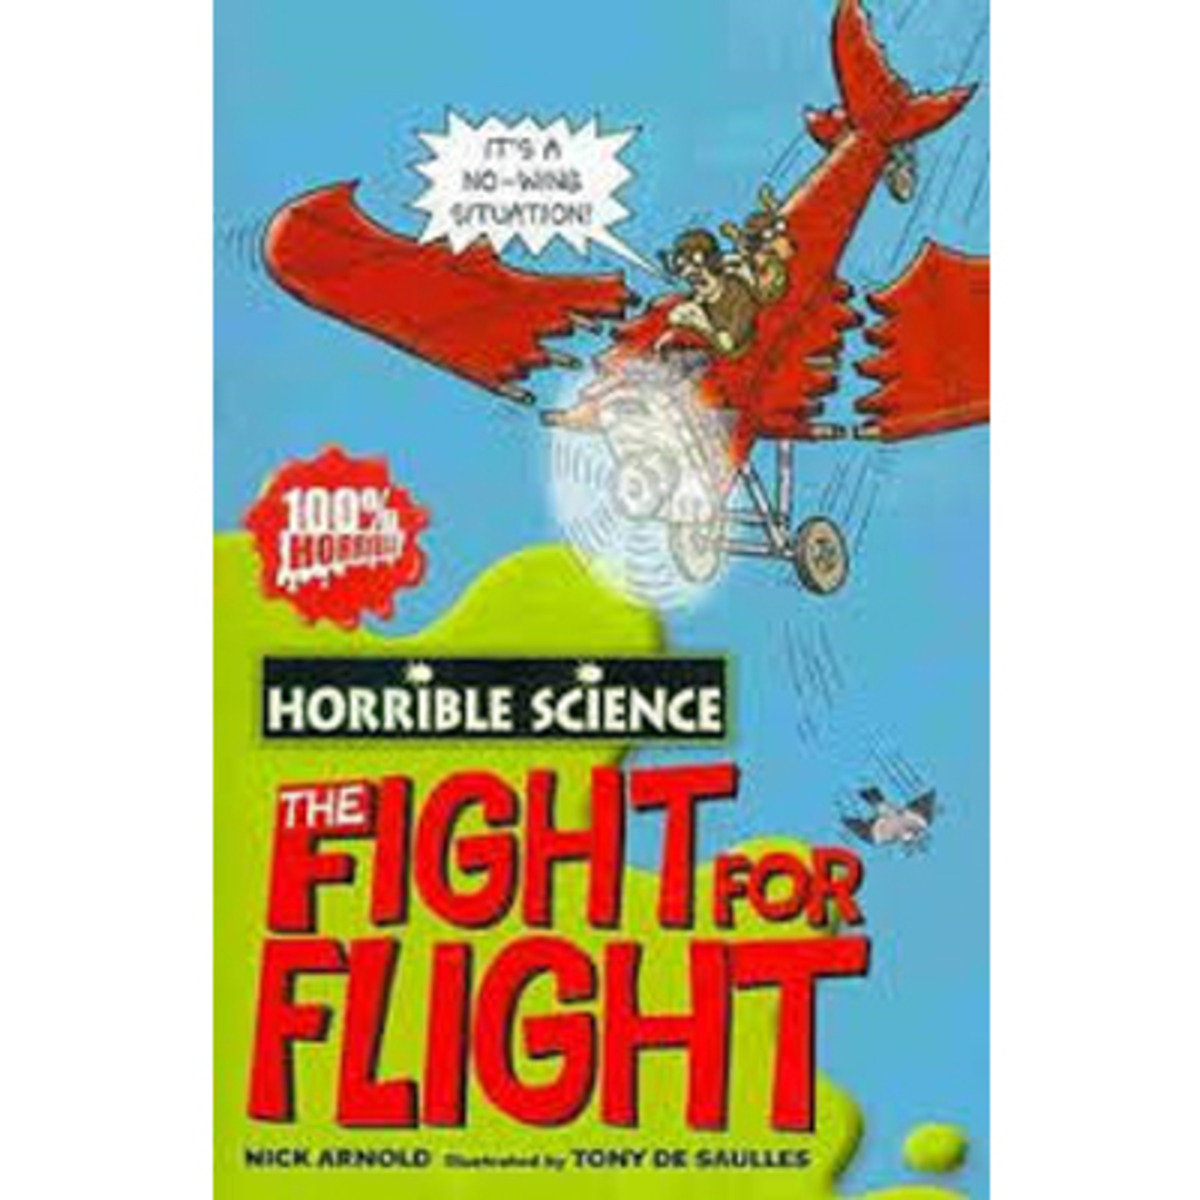 HORRIBLE SCIENCE: FEARSOME FIGHT FOR FLIGHT 9781407110271